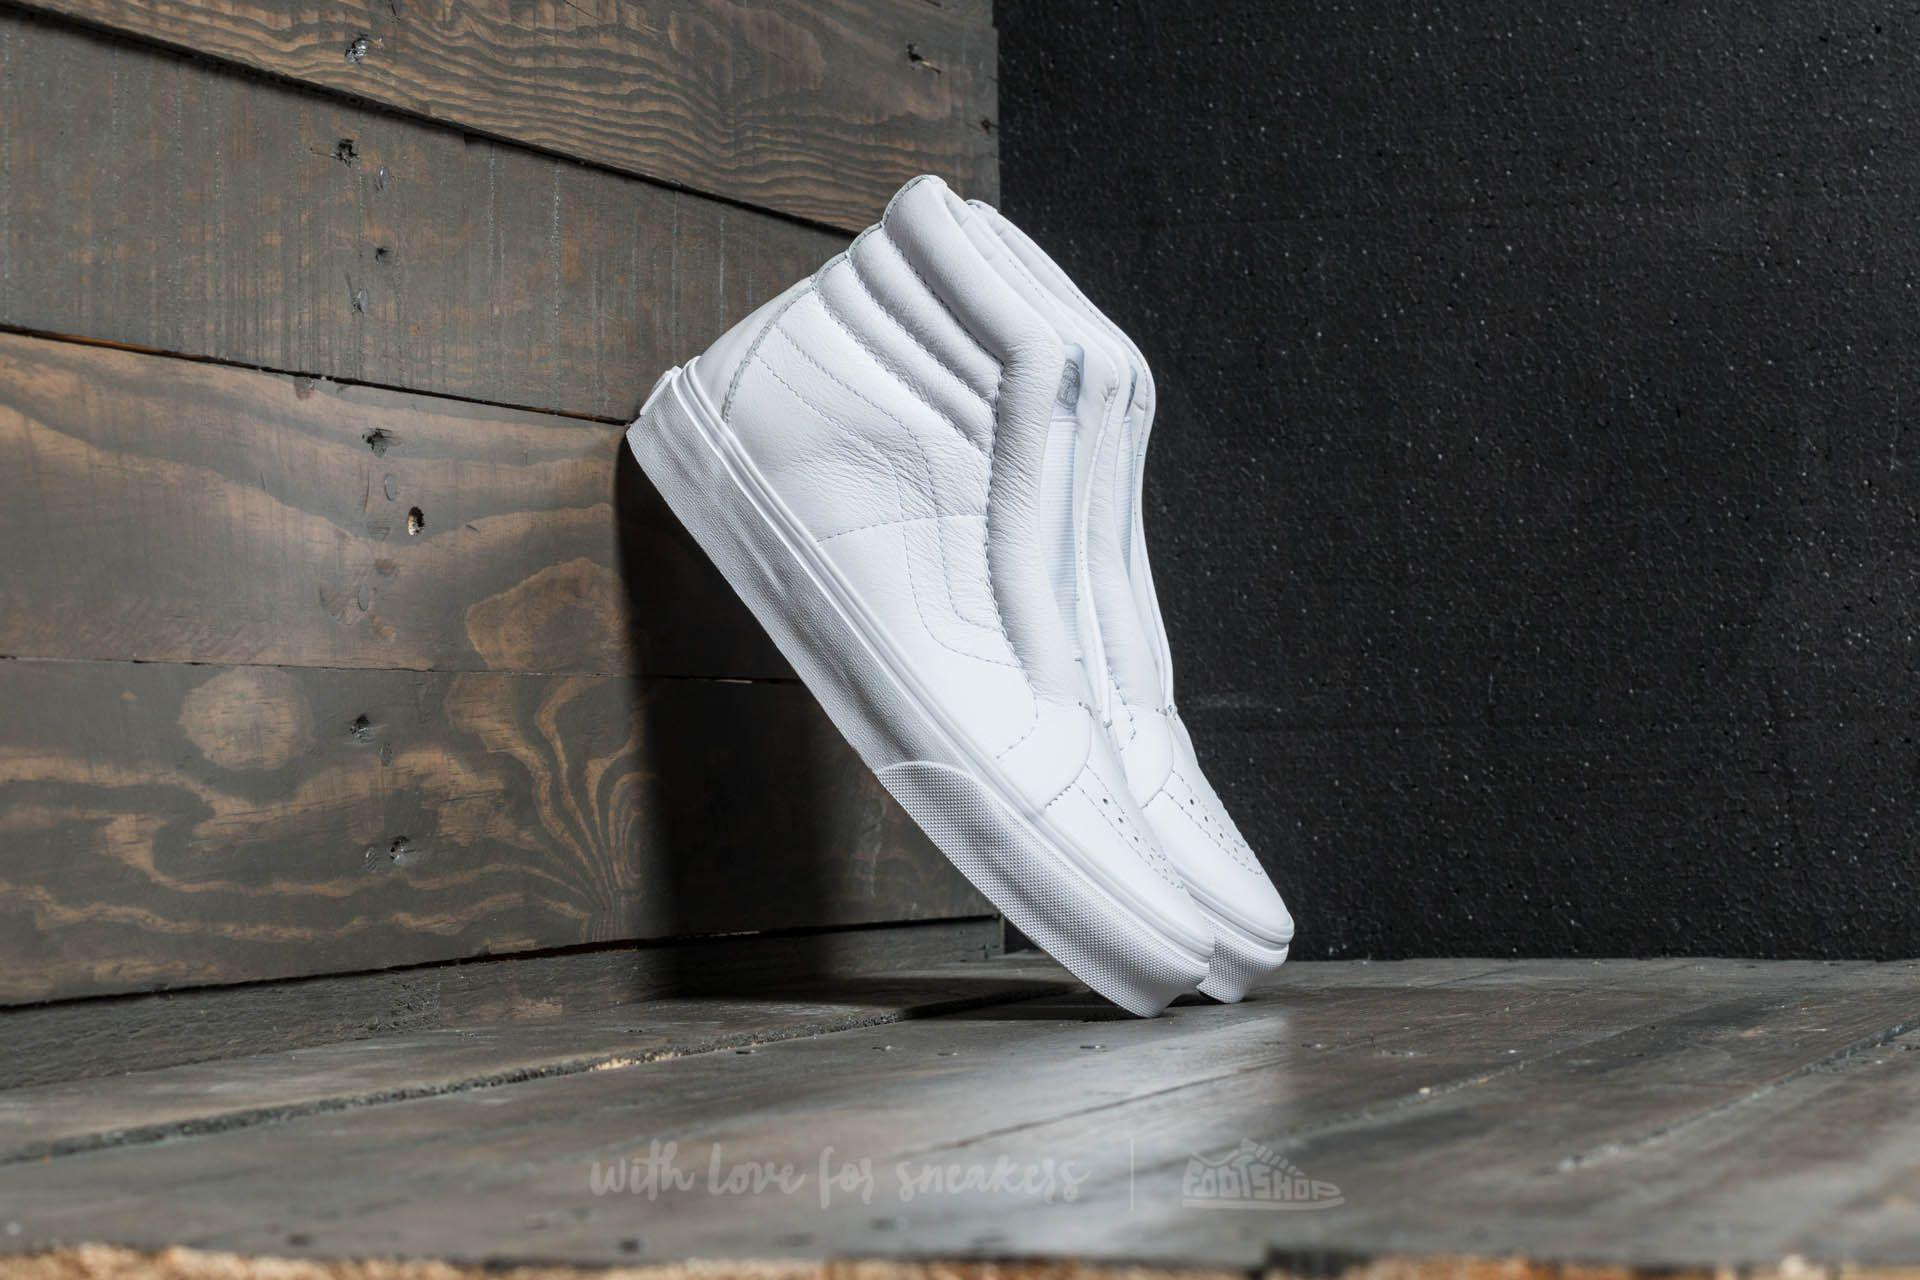 d1adf11a8b758e Lyst - Vans Sk8-hi Reissue Laceless (leather) True White in White ...